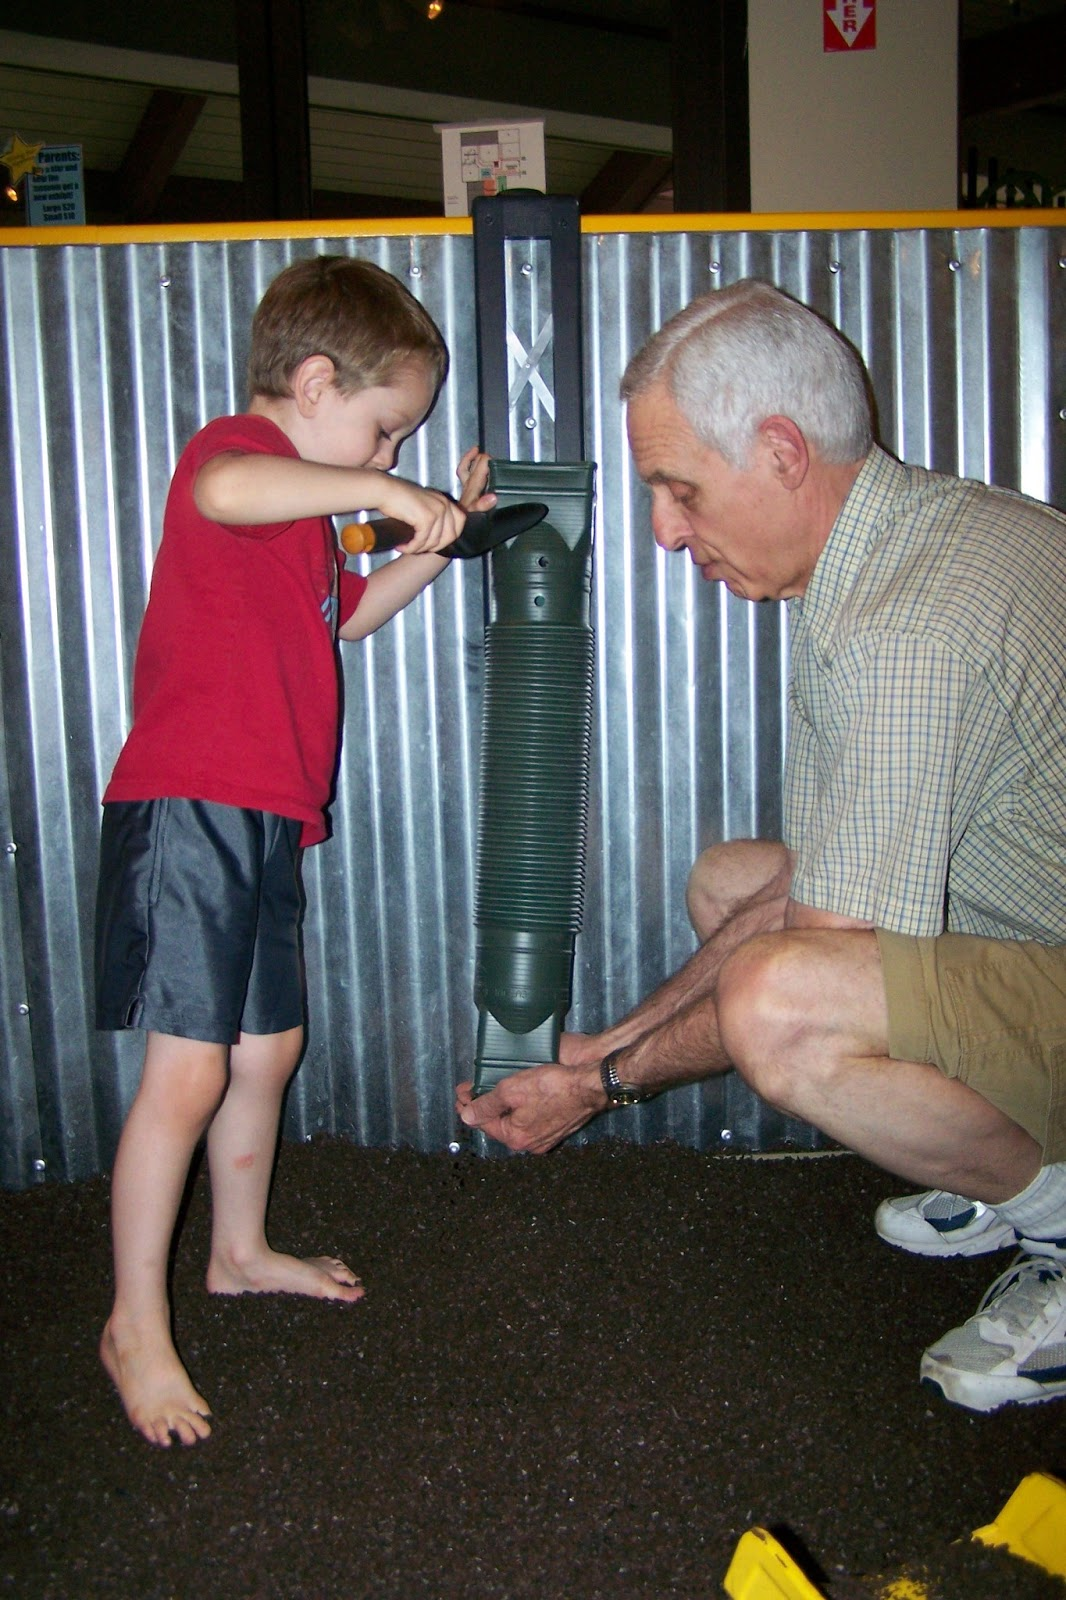 Grandma And Grandpa Showed Ryan What Rubber Mulch Was He Thought It Was Pretty Cool Until He Tried To Eat It Ian Liked The New Addition Of A Tube In